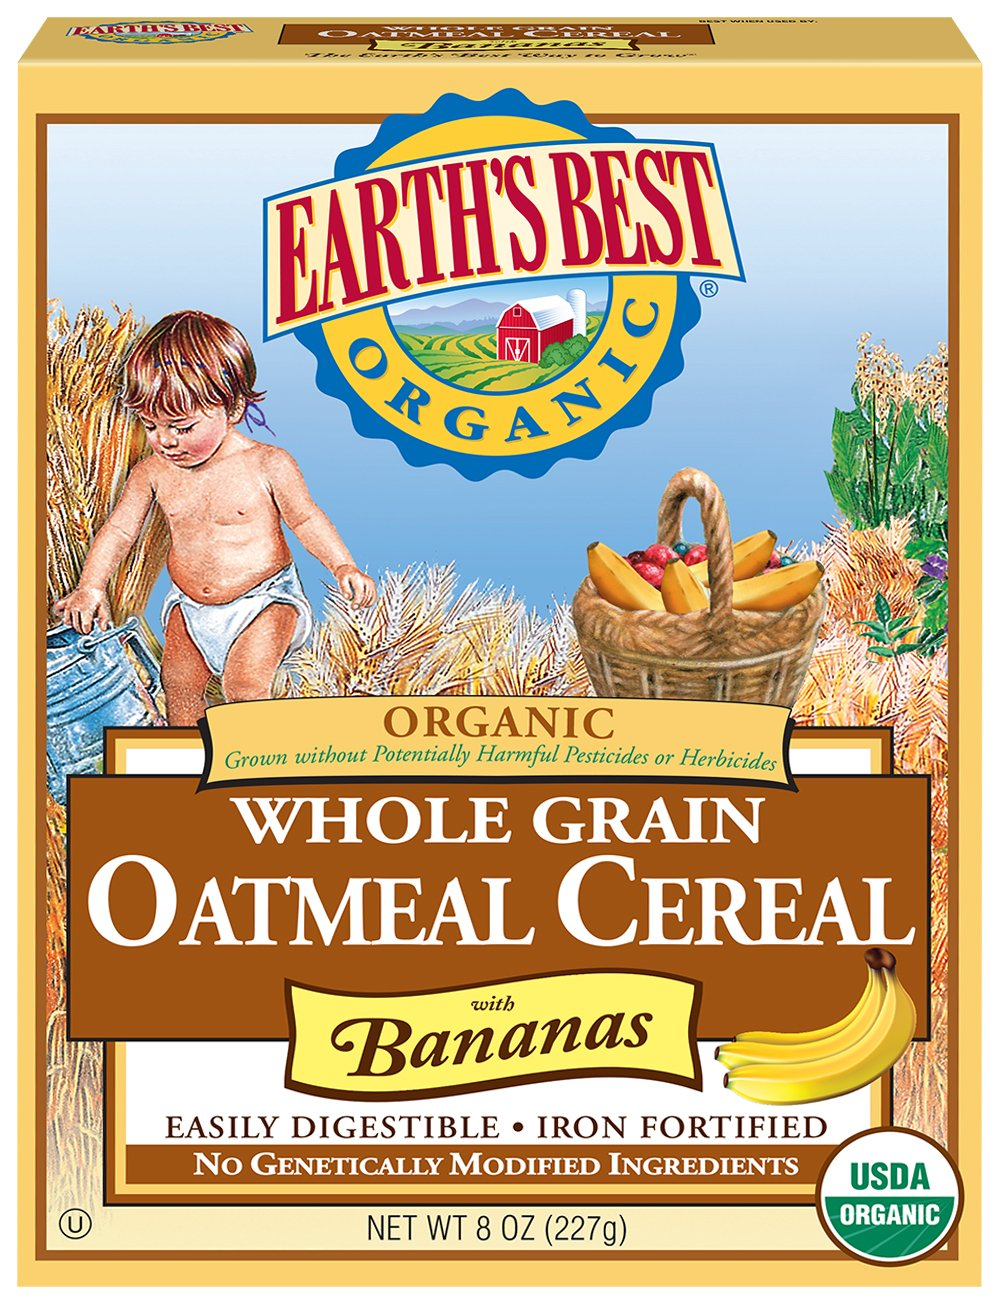 Earth's Best Organic Infant Cereal, Whole Grain Oatmeal with Bananas, 8 oz. Box